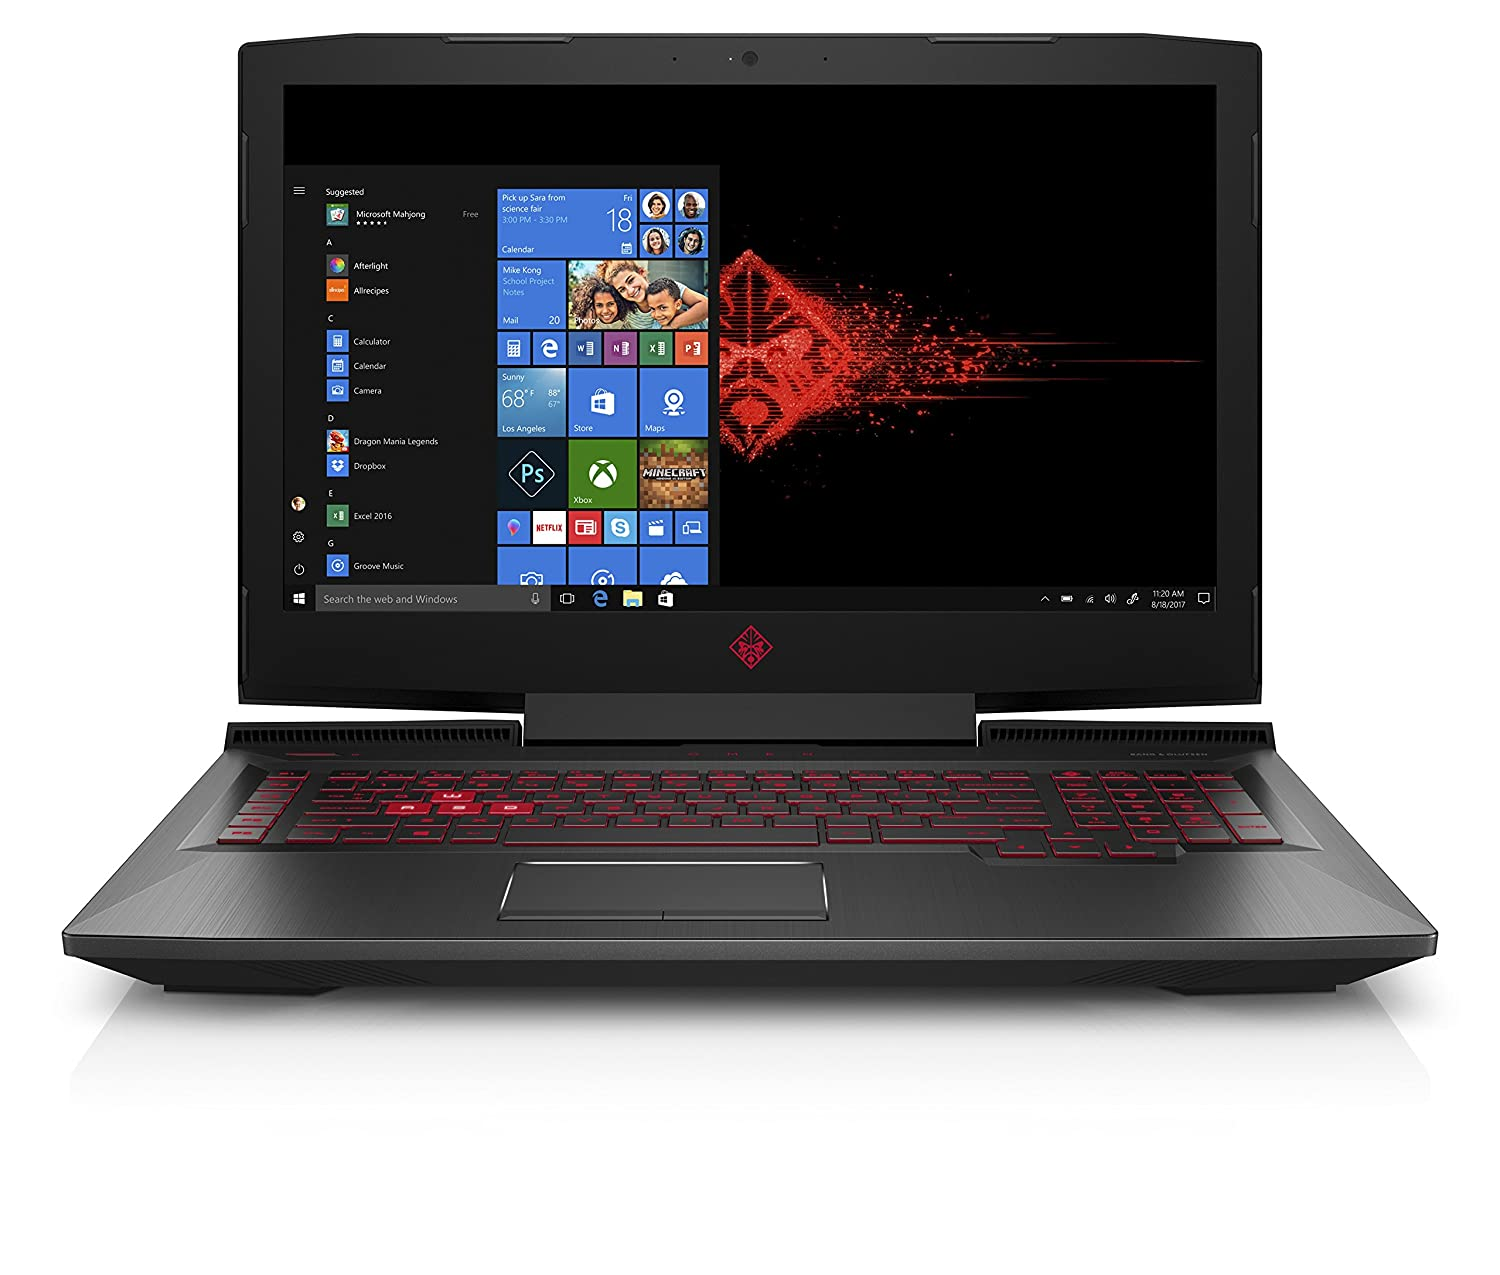 OMEN by HP 17-inch Gaming Laptop, Intel Core i7-8750H Processor, NVIDIA GeForce GTX 1050 Ti 4 GB, 12 GB RAM, 1 TB hard drive and 128 GB SSD, Windows 10 Home (17-an110nr, Black)